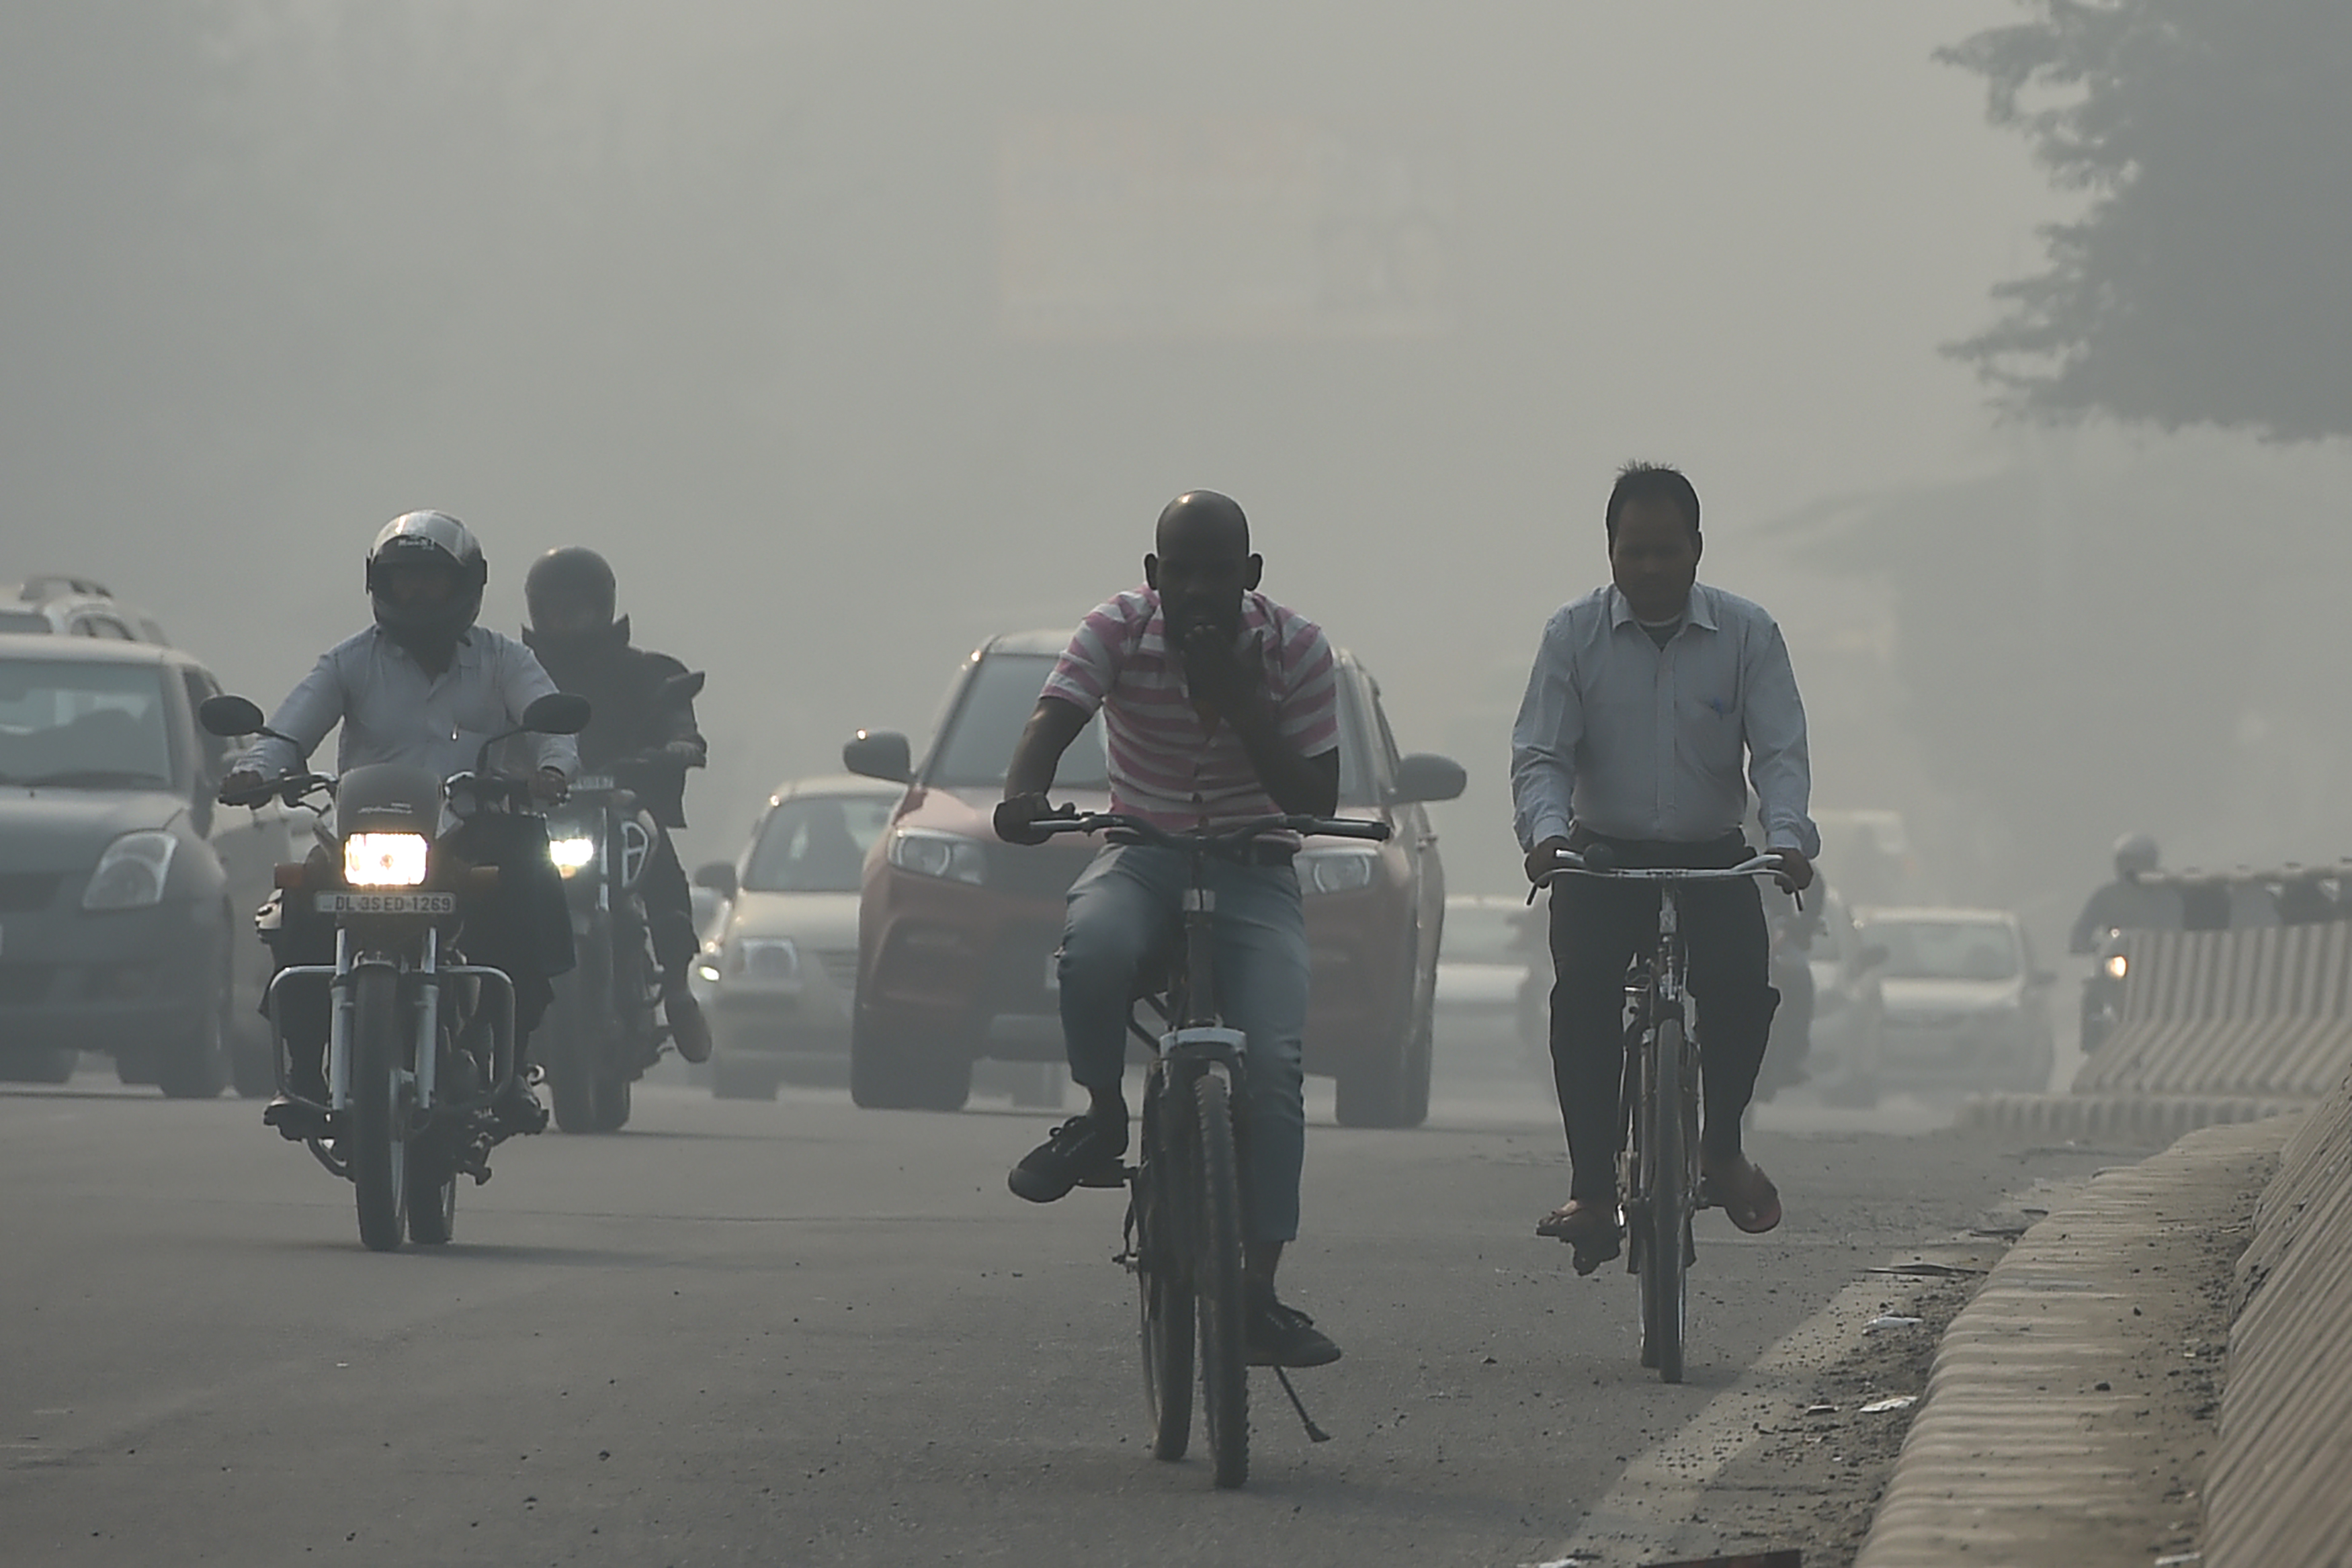 Drivers and cyclists make their way along a road under heavy smog conditions in New Delhi on November 12, 2019. (Photo by MONEY SHARMA/AFP via Getty Images)